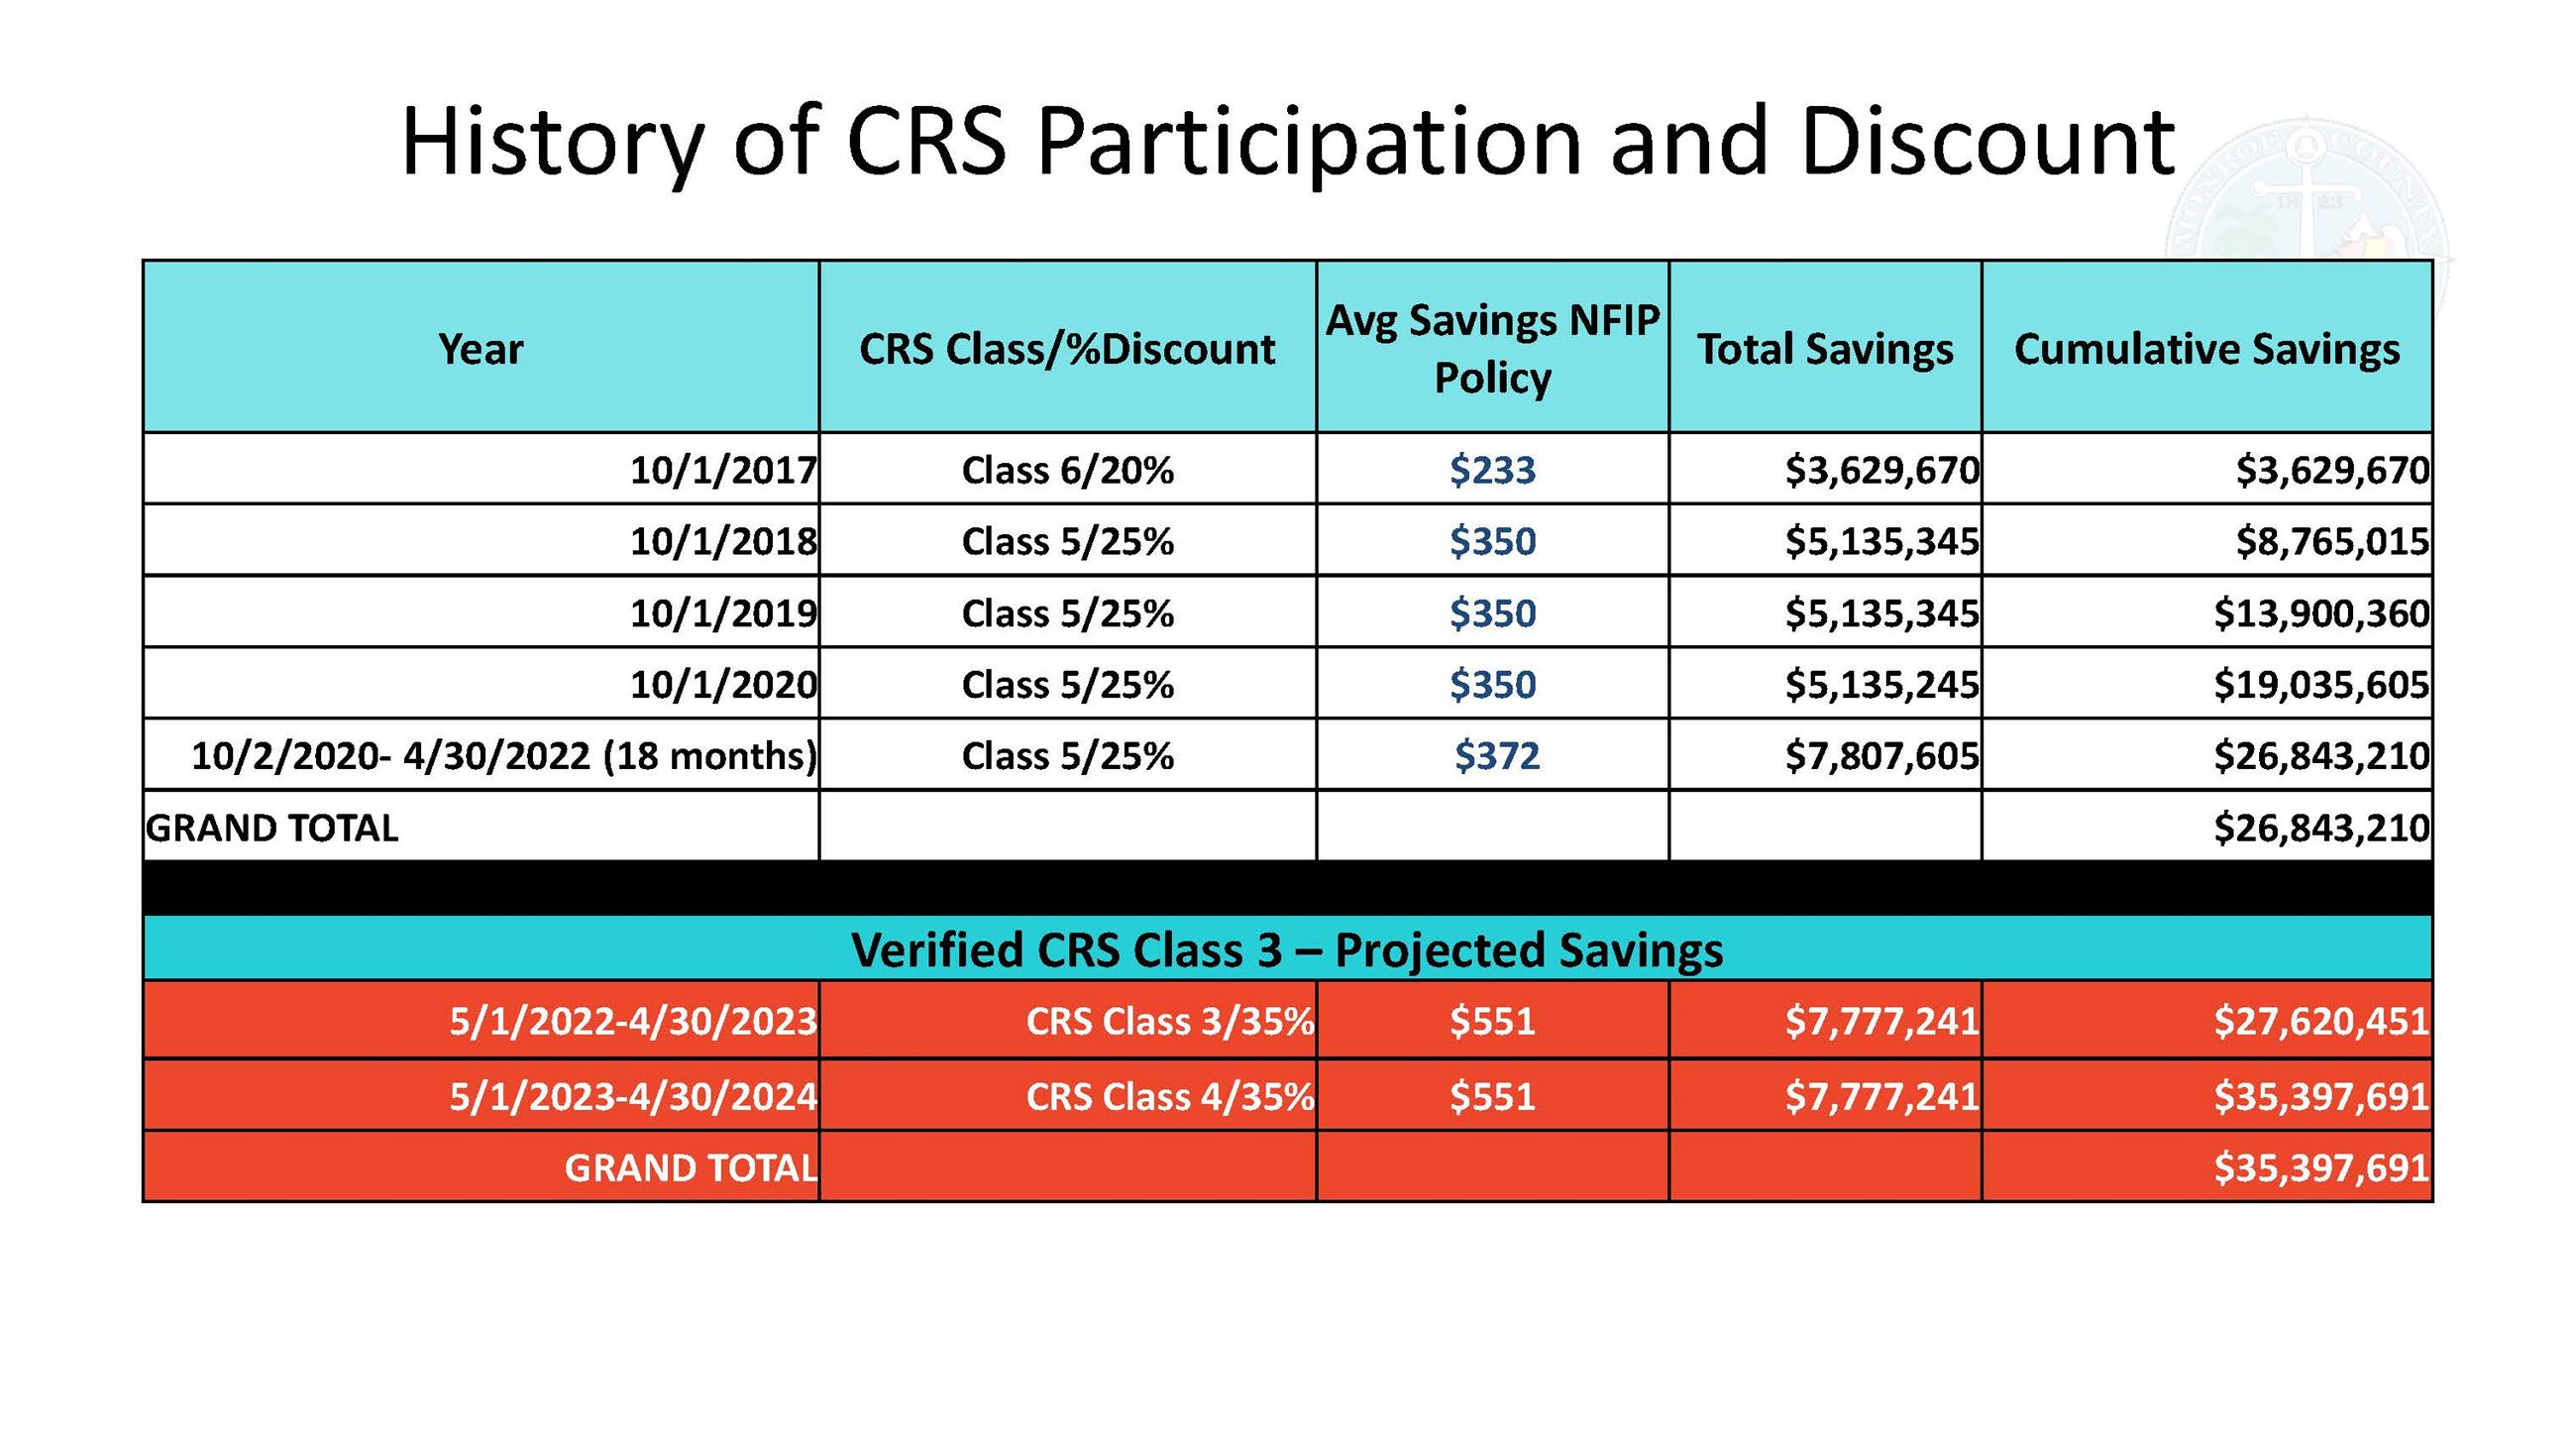 Table showing savings in past 5 years of class 5 designation